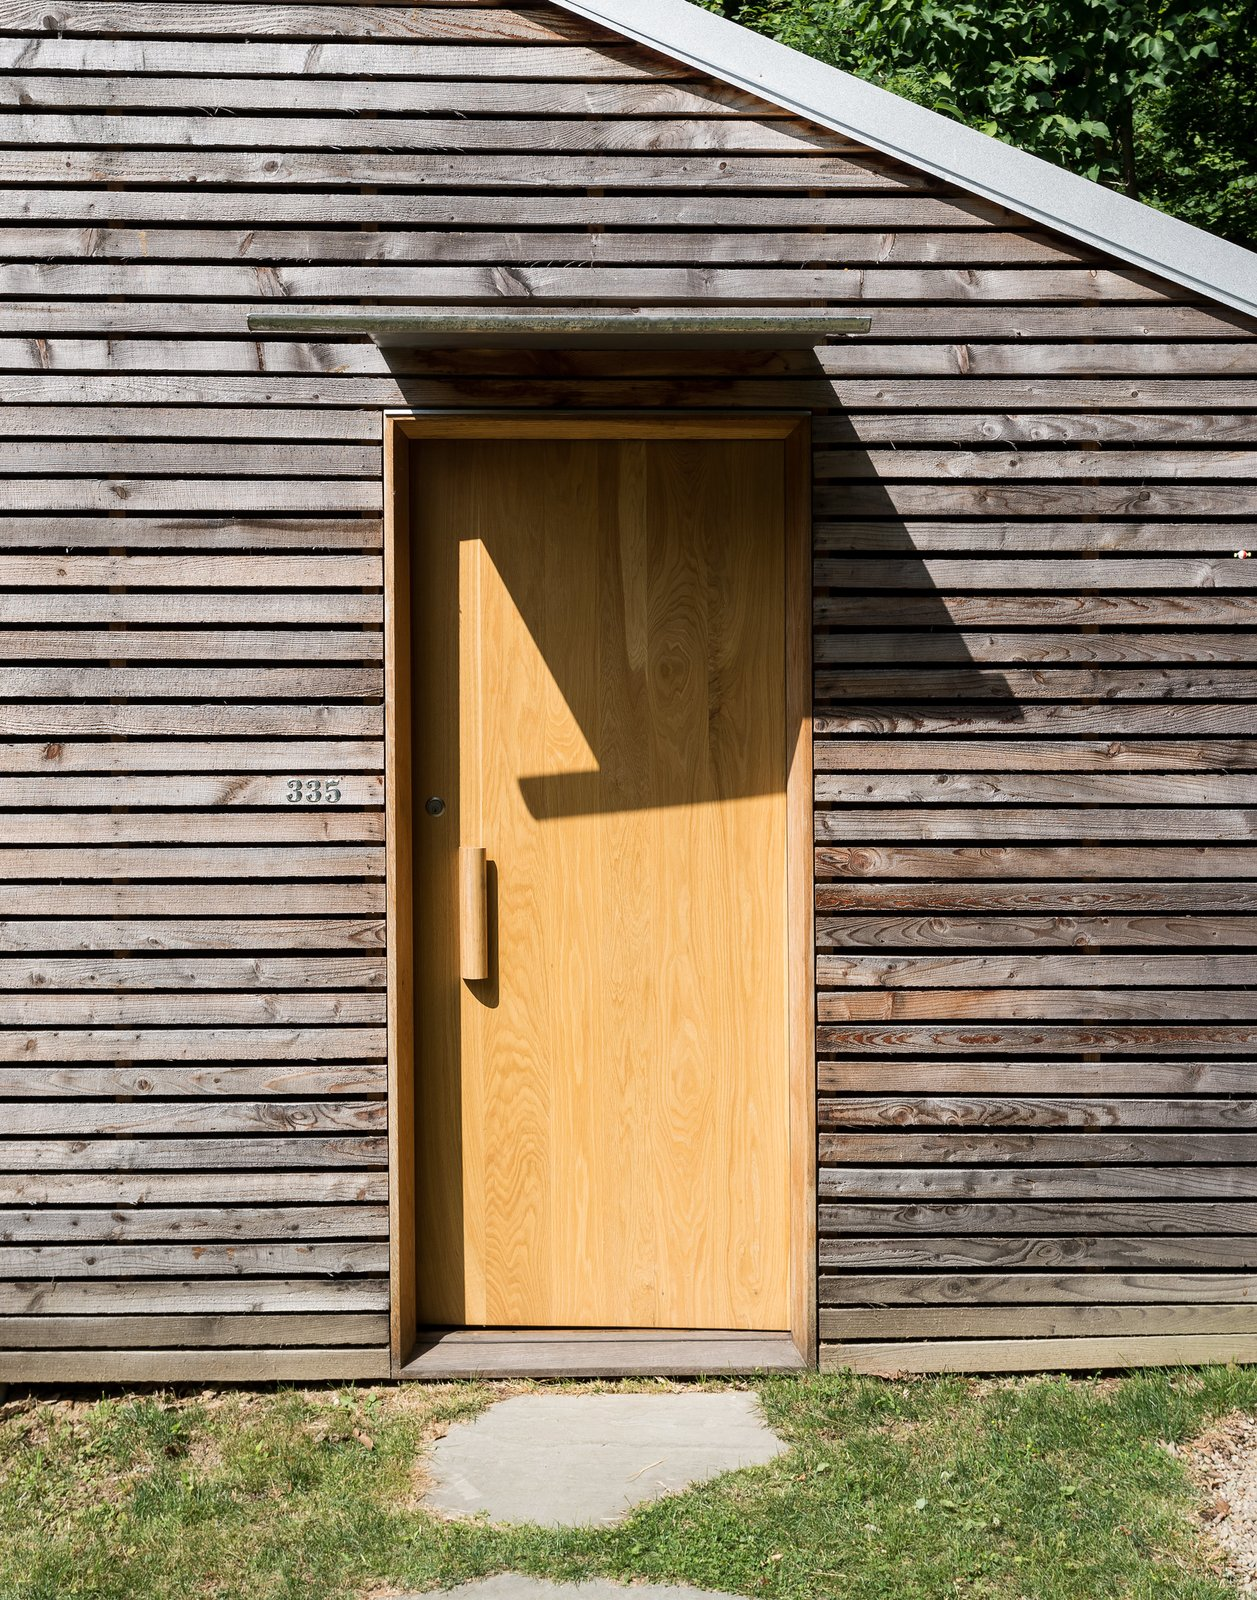 Taking a cue from a nearby farm structure, the couple used thin strips of larch to disguise imperfections in the original concrete block structure.